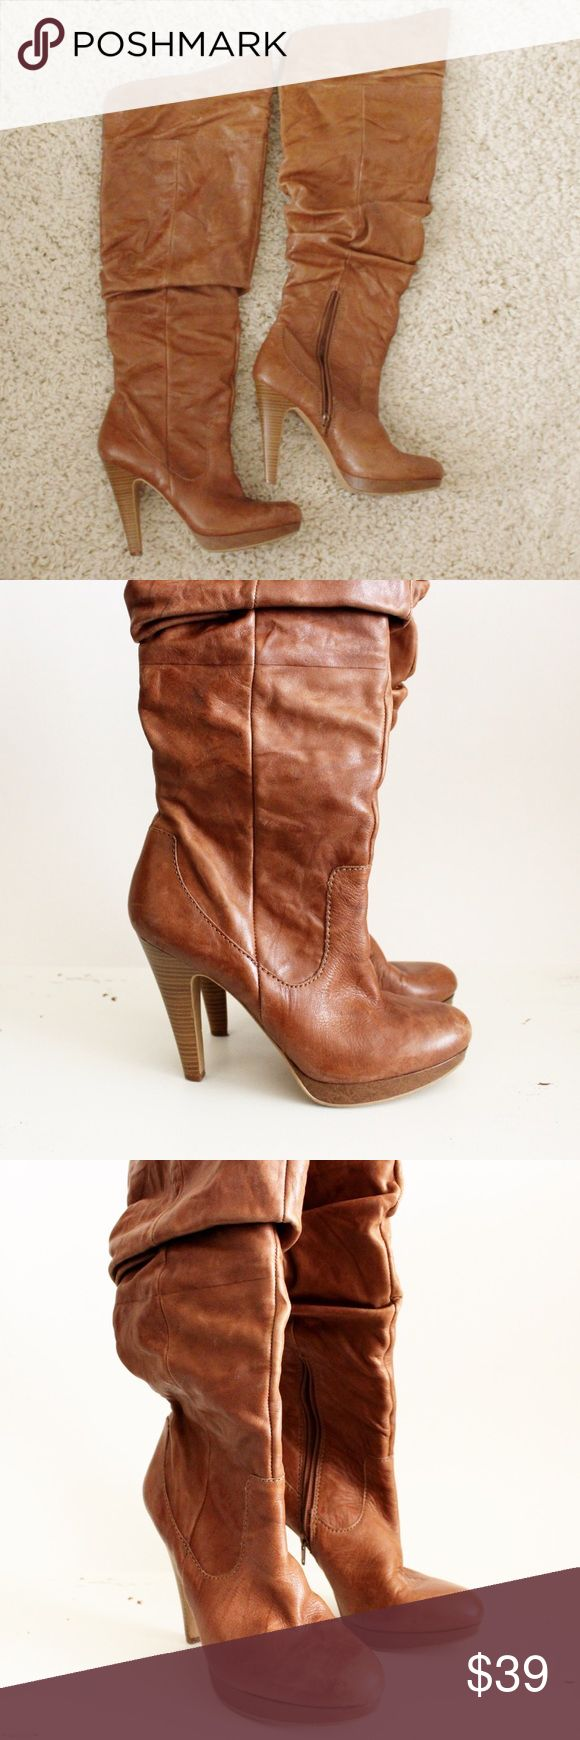 Jessica Simpson tall camel boot These are very comfortable only worn 2-3 times. Size 8. Jessica Simpson Shoes Over the Knee Boots